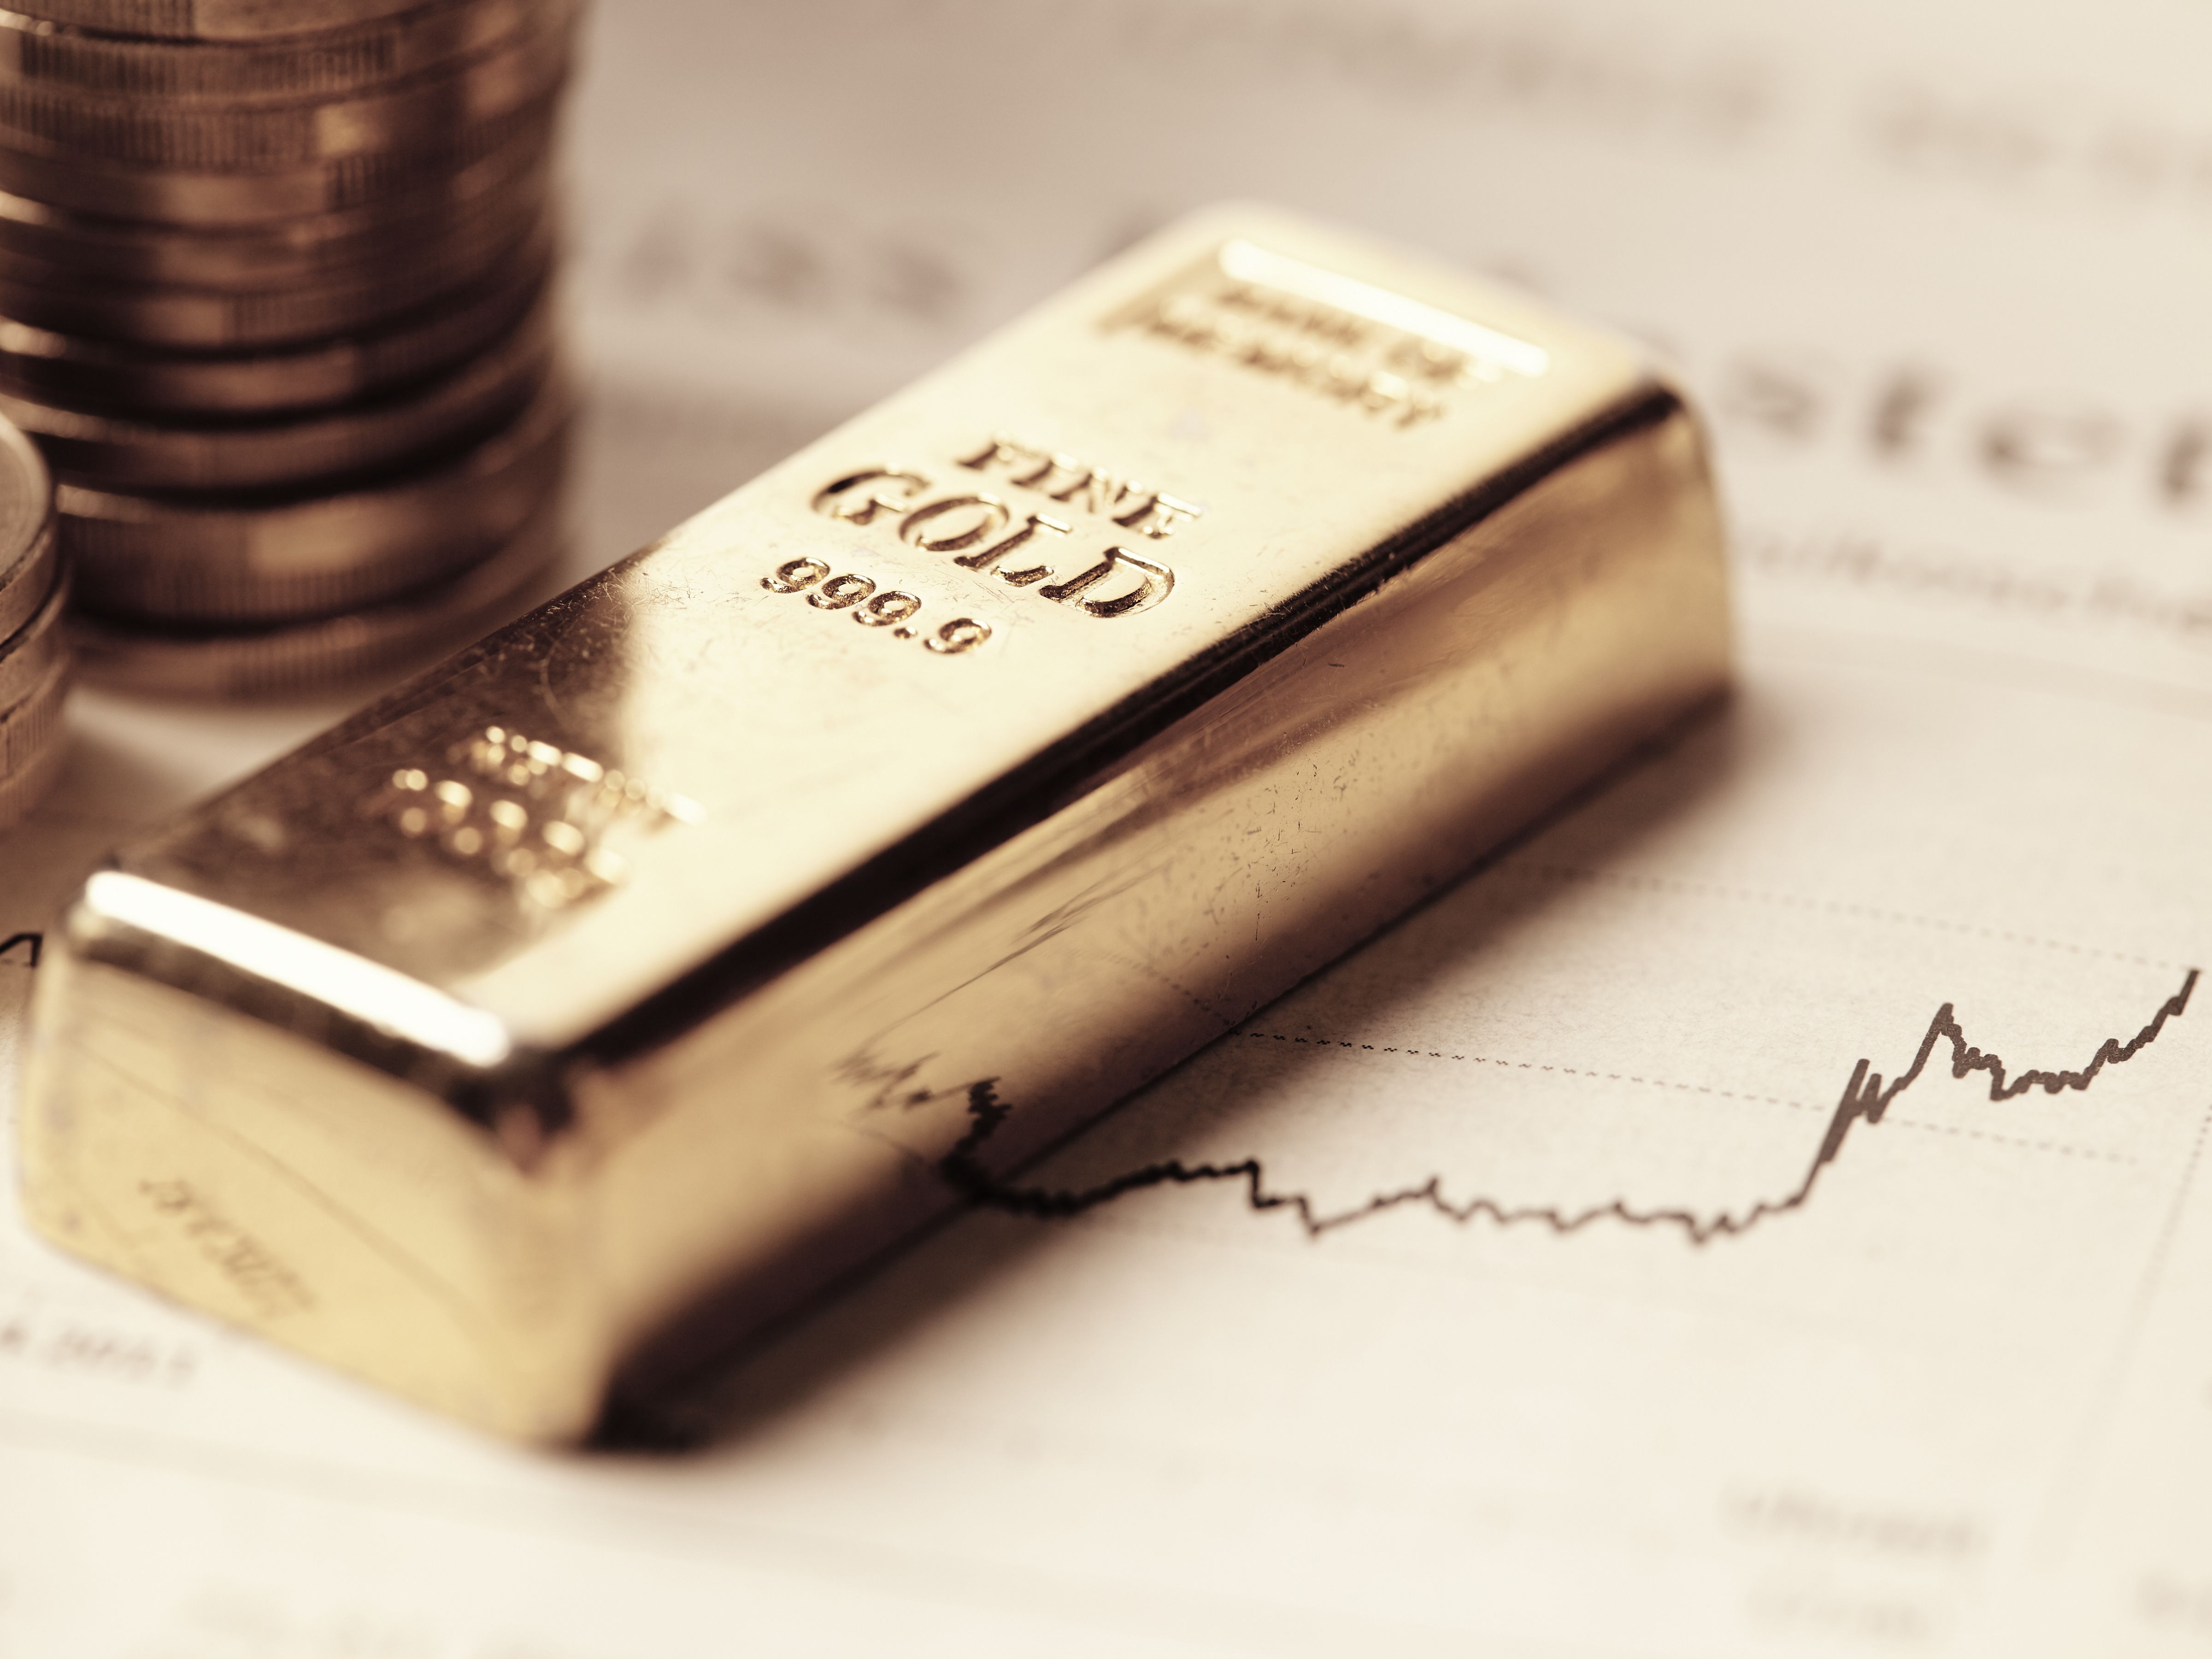 Gold scrambles to hold weekly support – is a rally next? (GOLD, DXY)